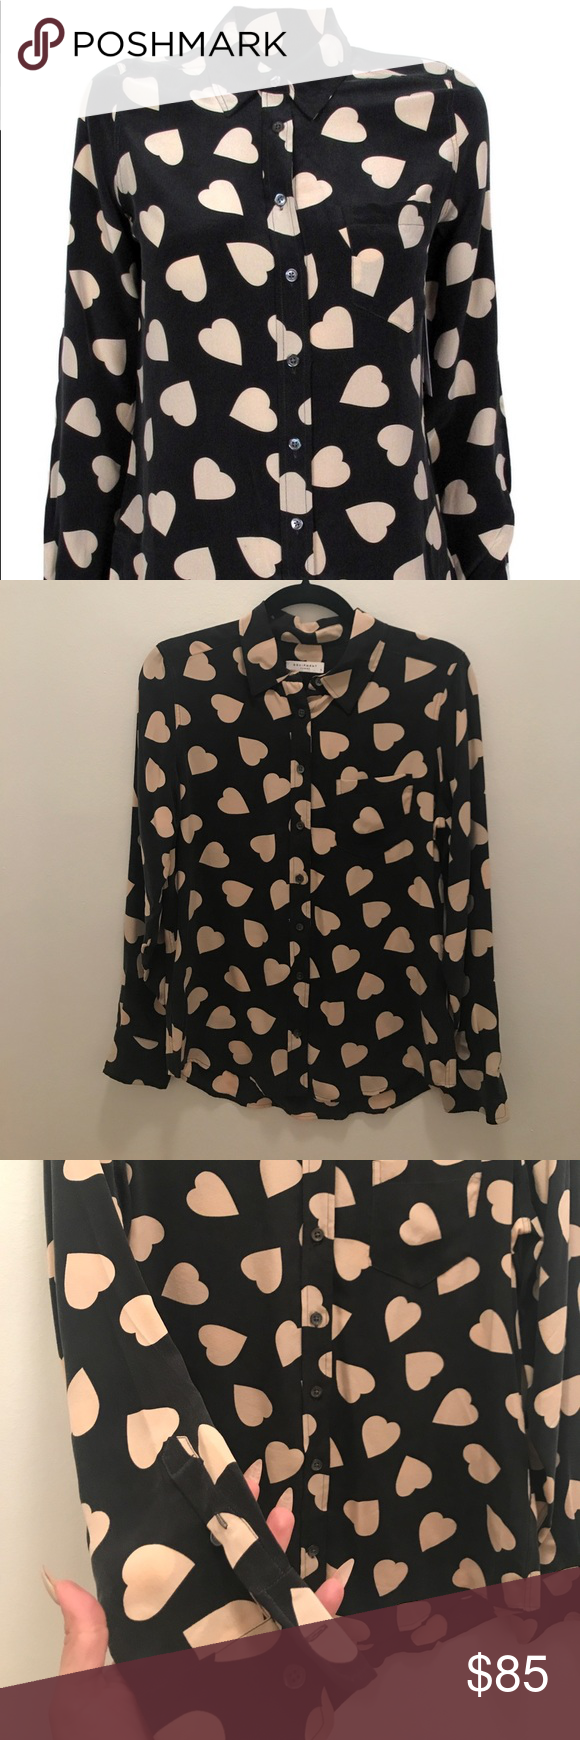 6290c3167e2dc EQUIPMENT Brett Black Nude Heart Print Shirt Sz S 100% silk button down  shirt by Equipment. This is the famous hearts shirt in the nude and black  color way.